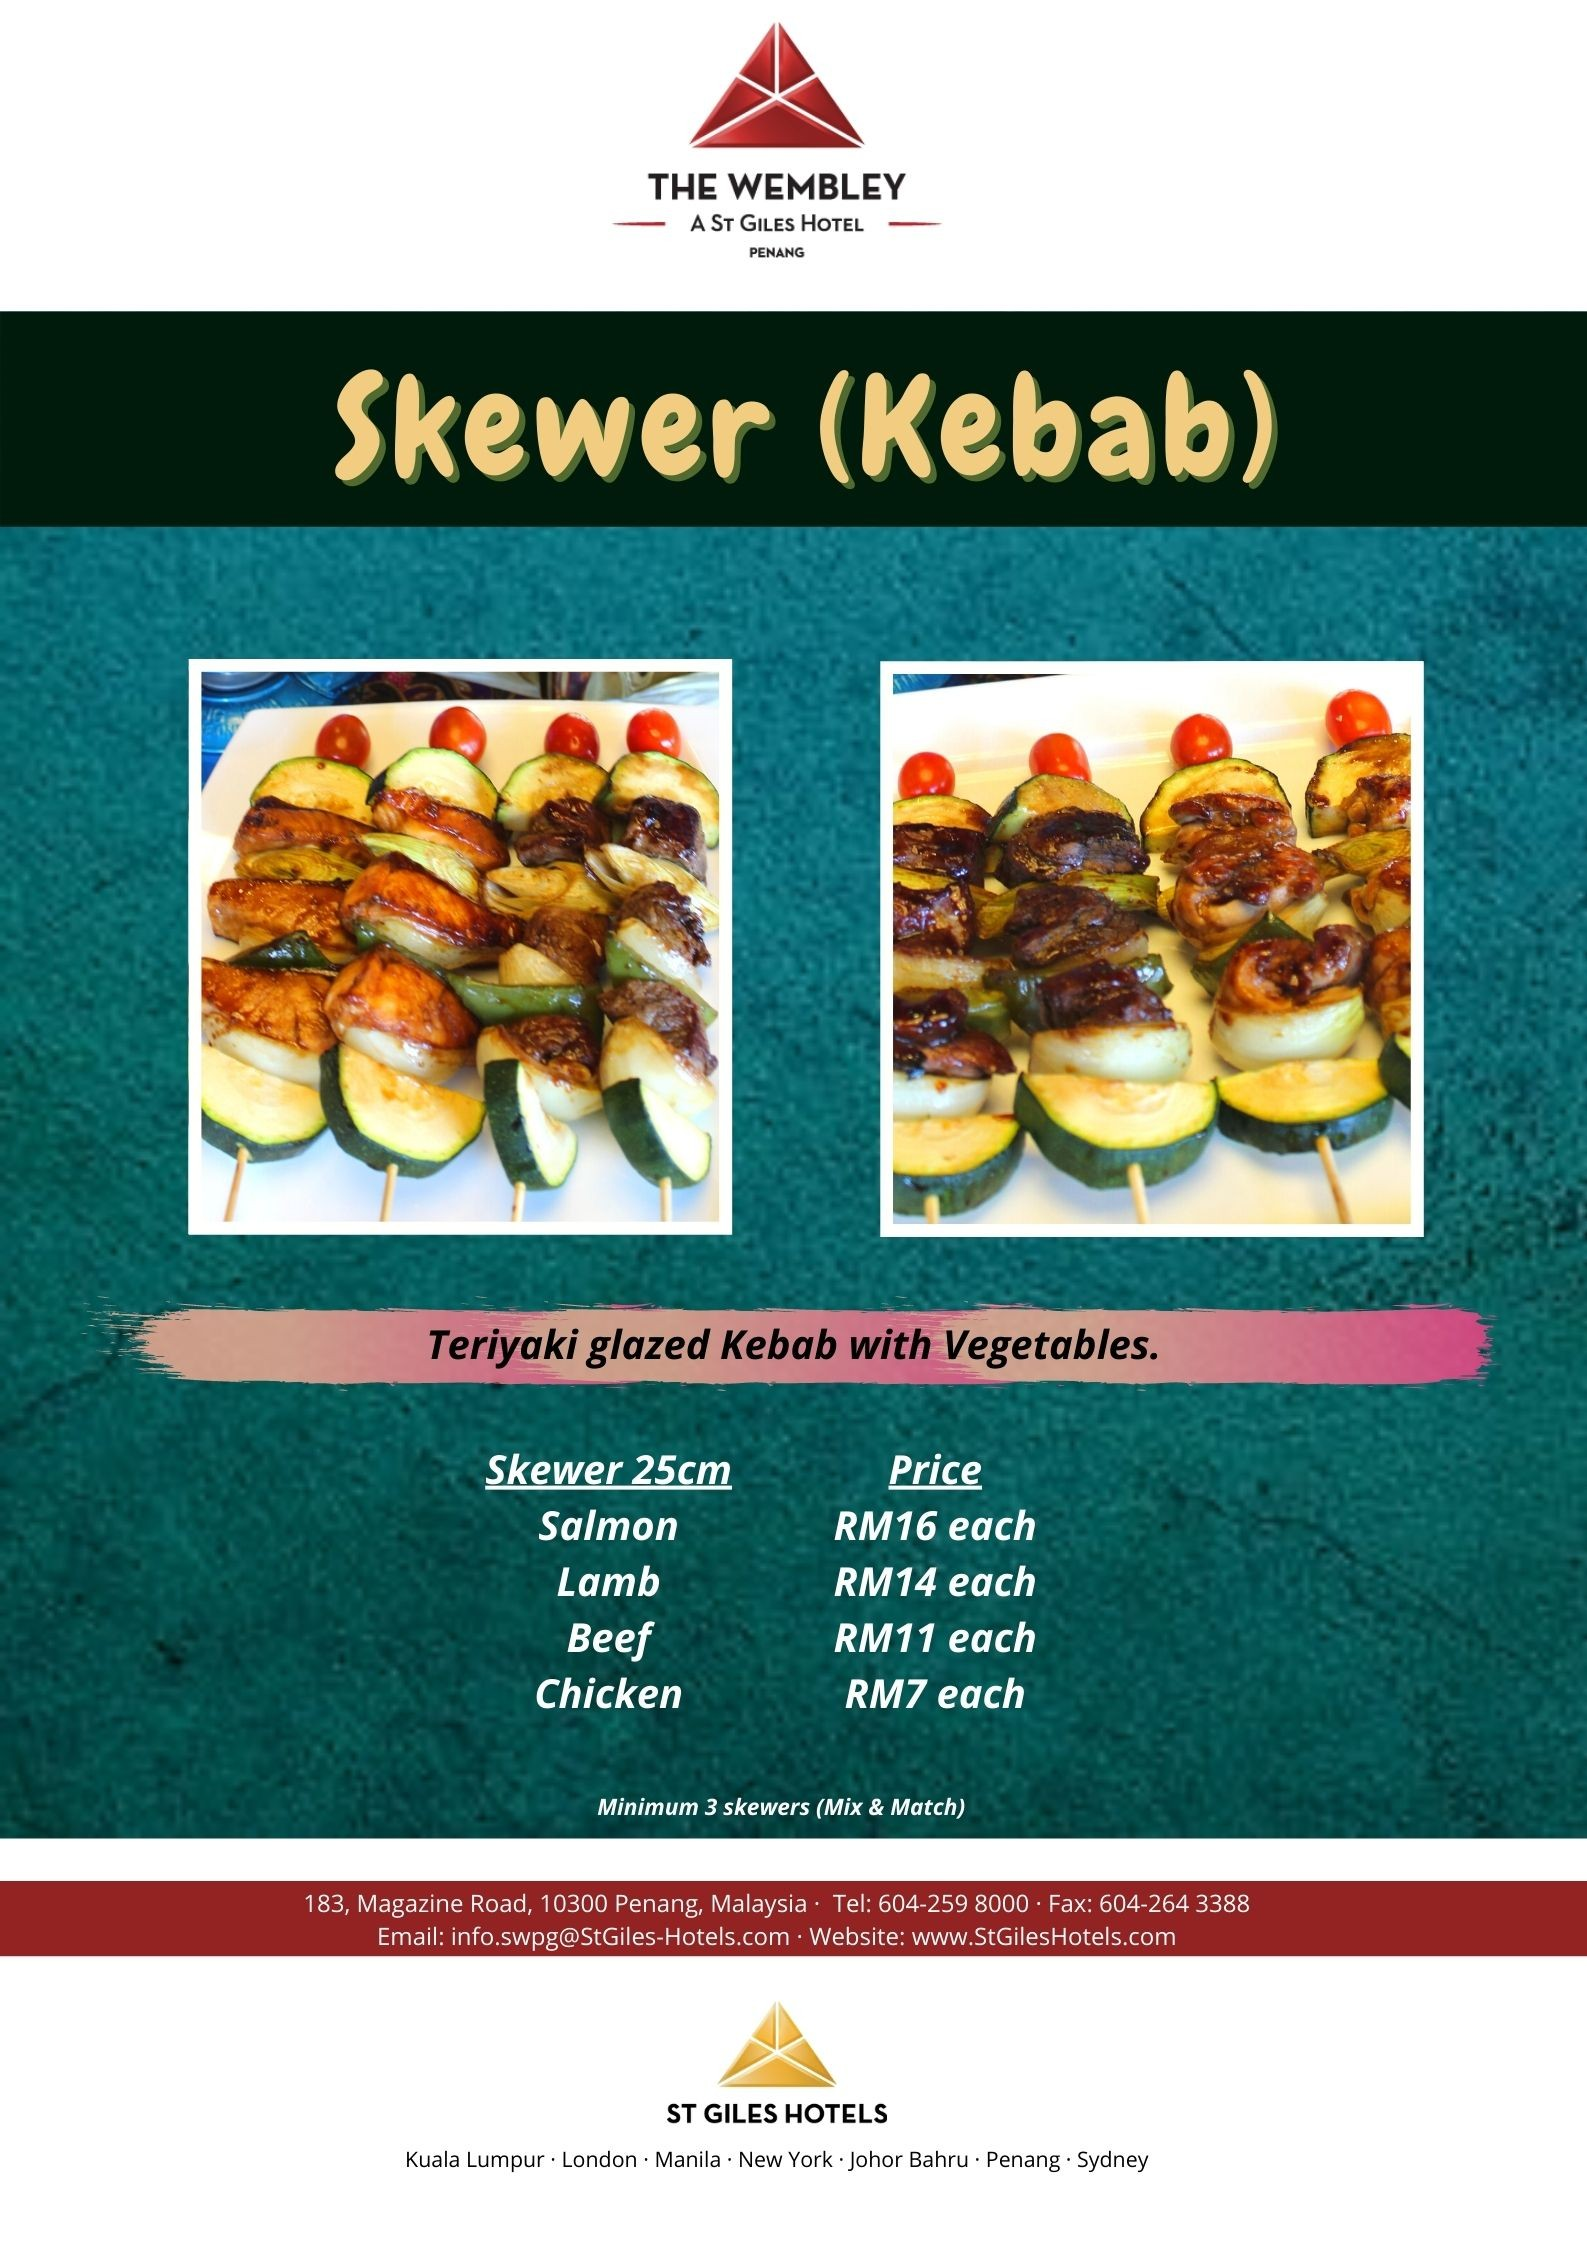 Skewer (Kebab)  The Wembley